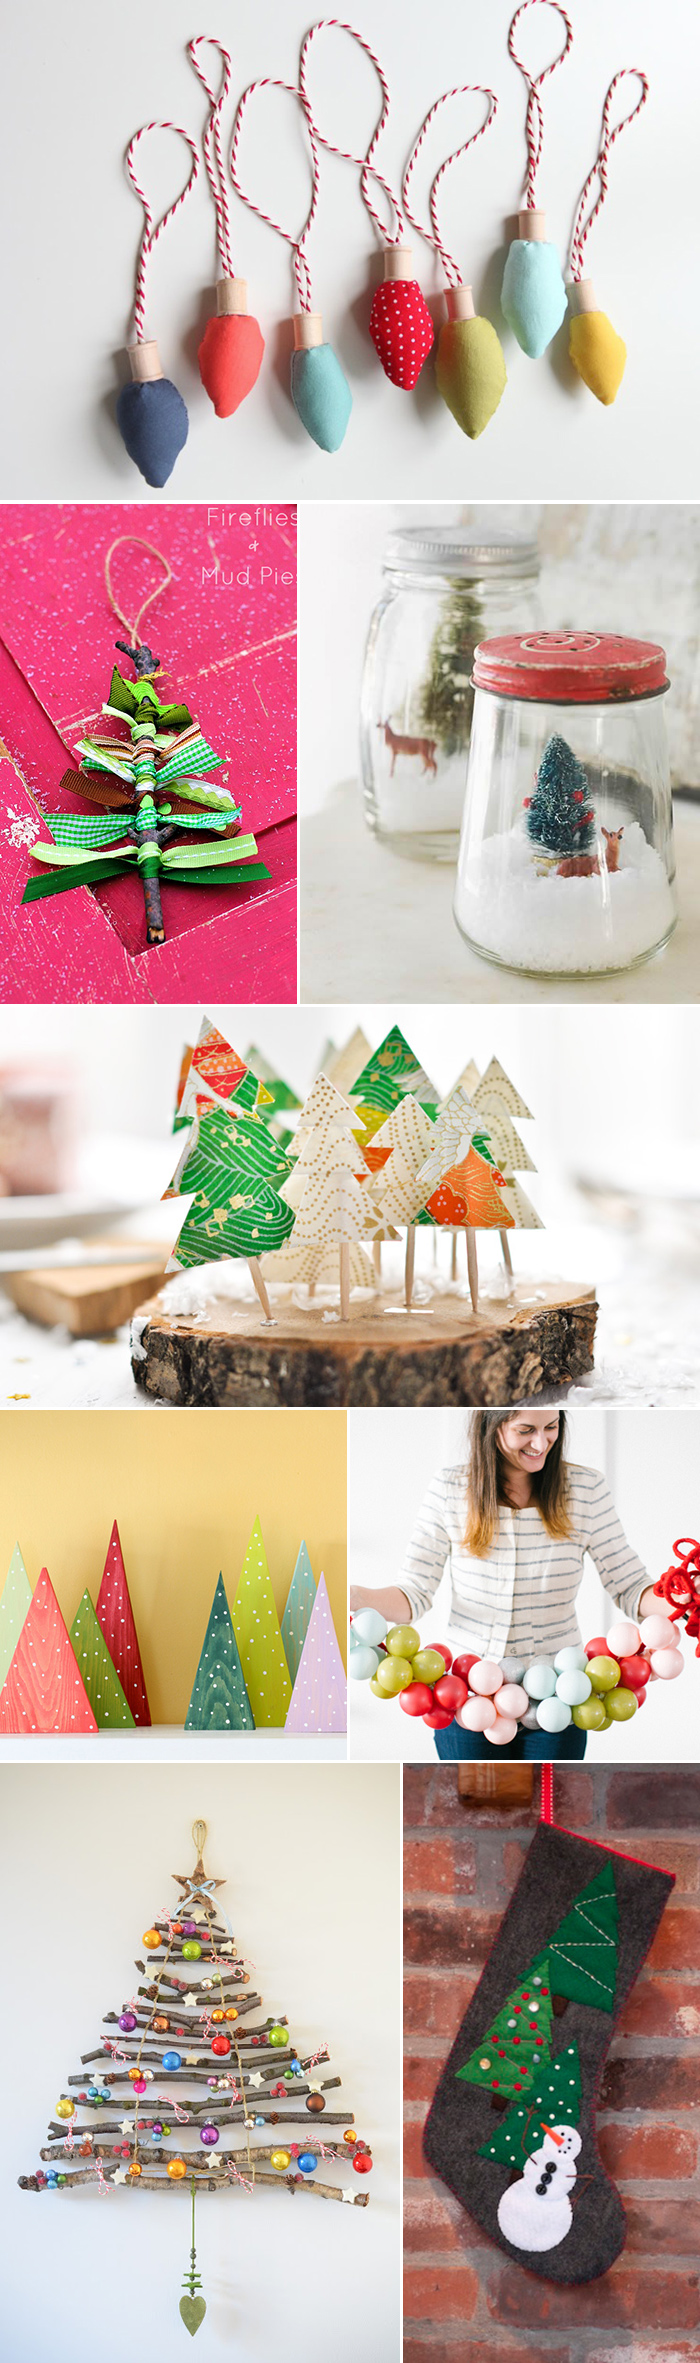 DIY Christmas tutorials for crafts & decor